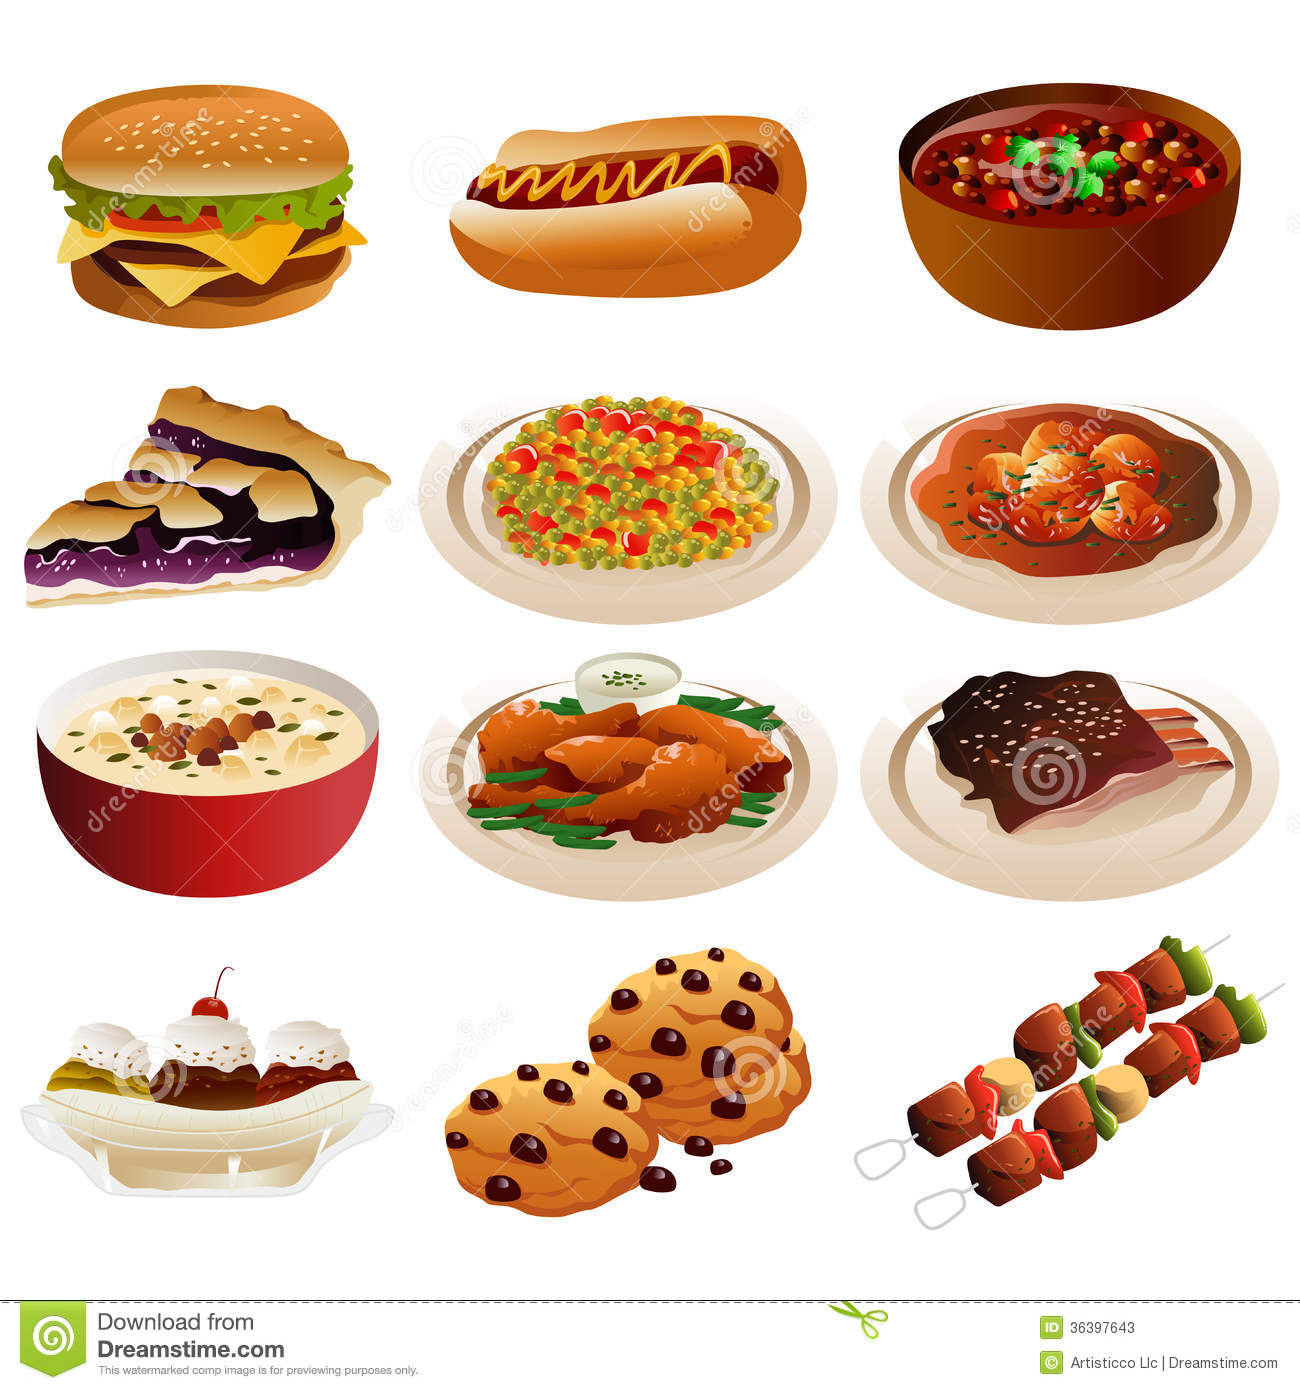 American food icons stock photos image 36397643 for About american cuisine